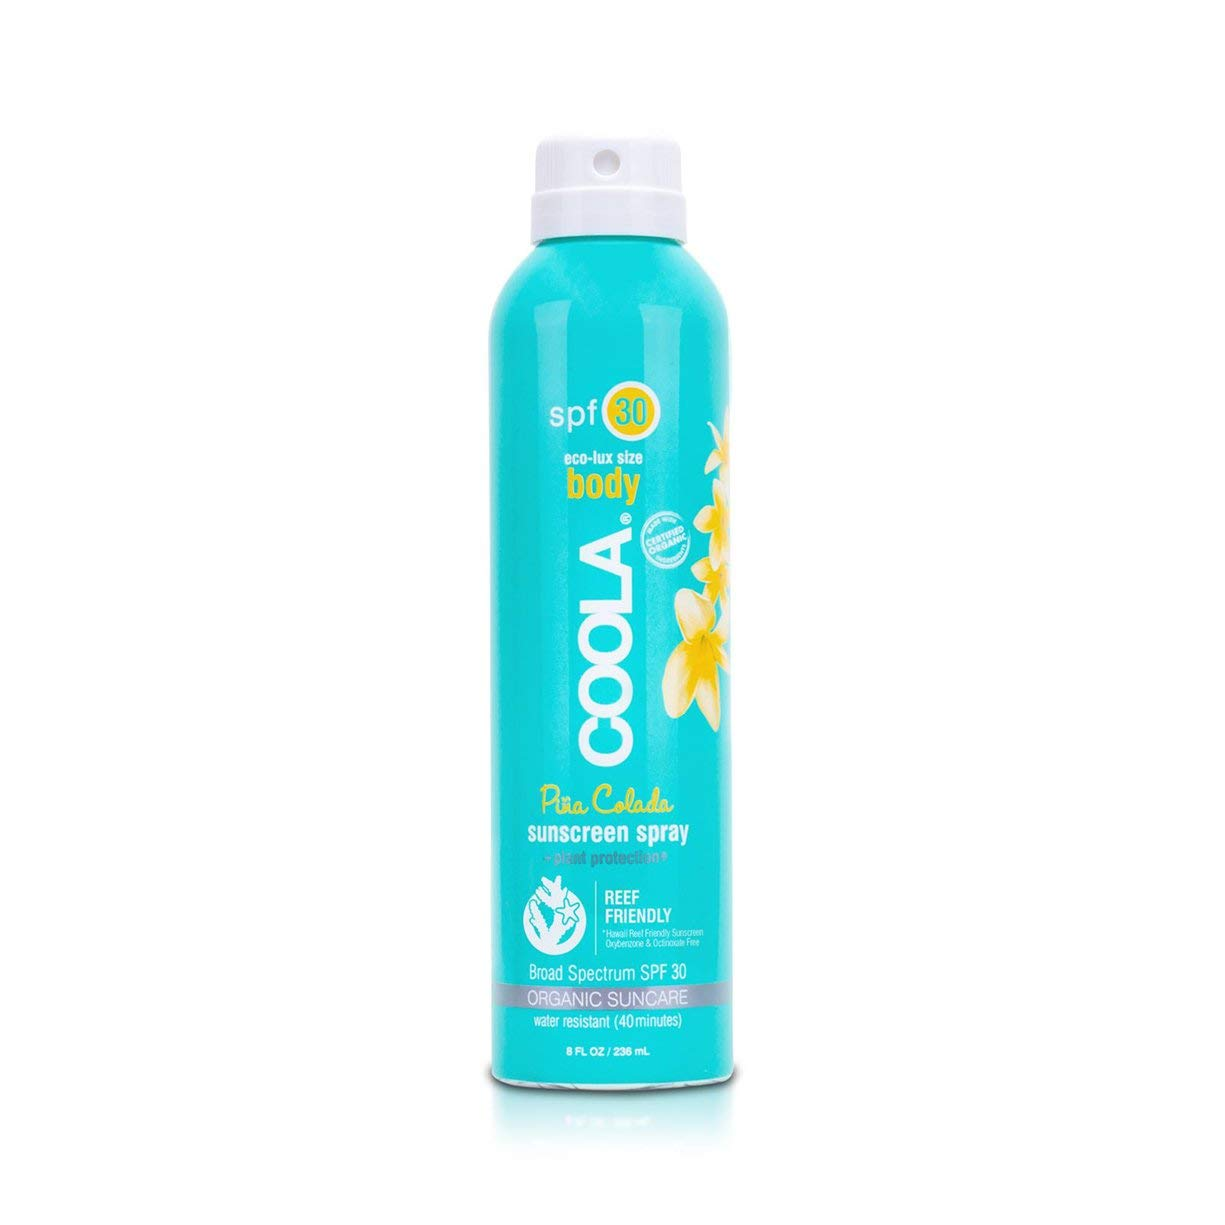 COOLA Organic Sunscreen Body Spray | SPF 30 | Certified Organic Ingredients | Farm to Face | Ultra Sheer | Eco-Lux Size | Continuous Spray | Water Resistant | Piña Colada by Coola Suncare